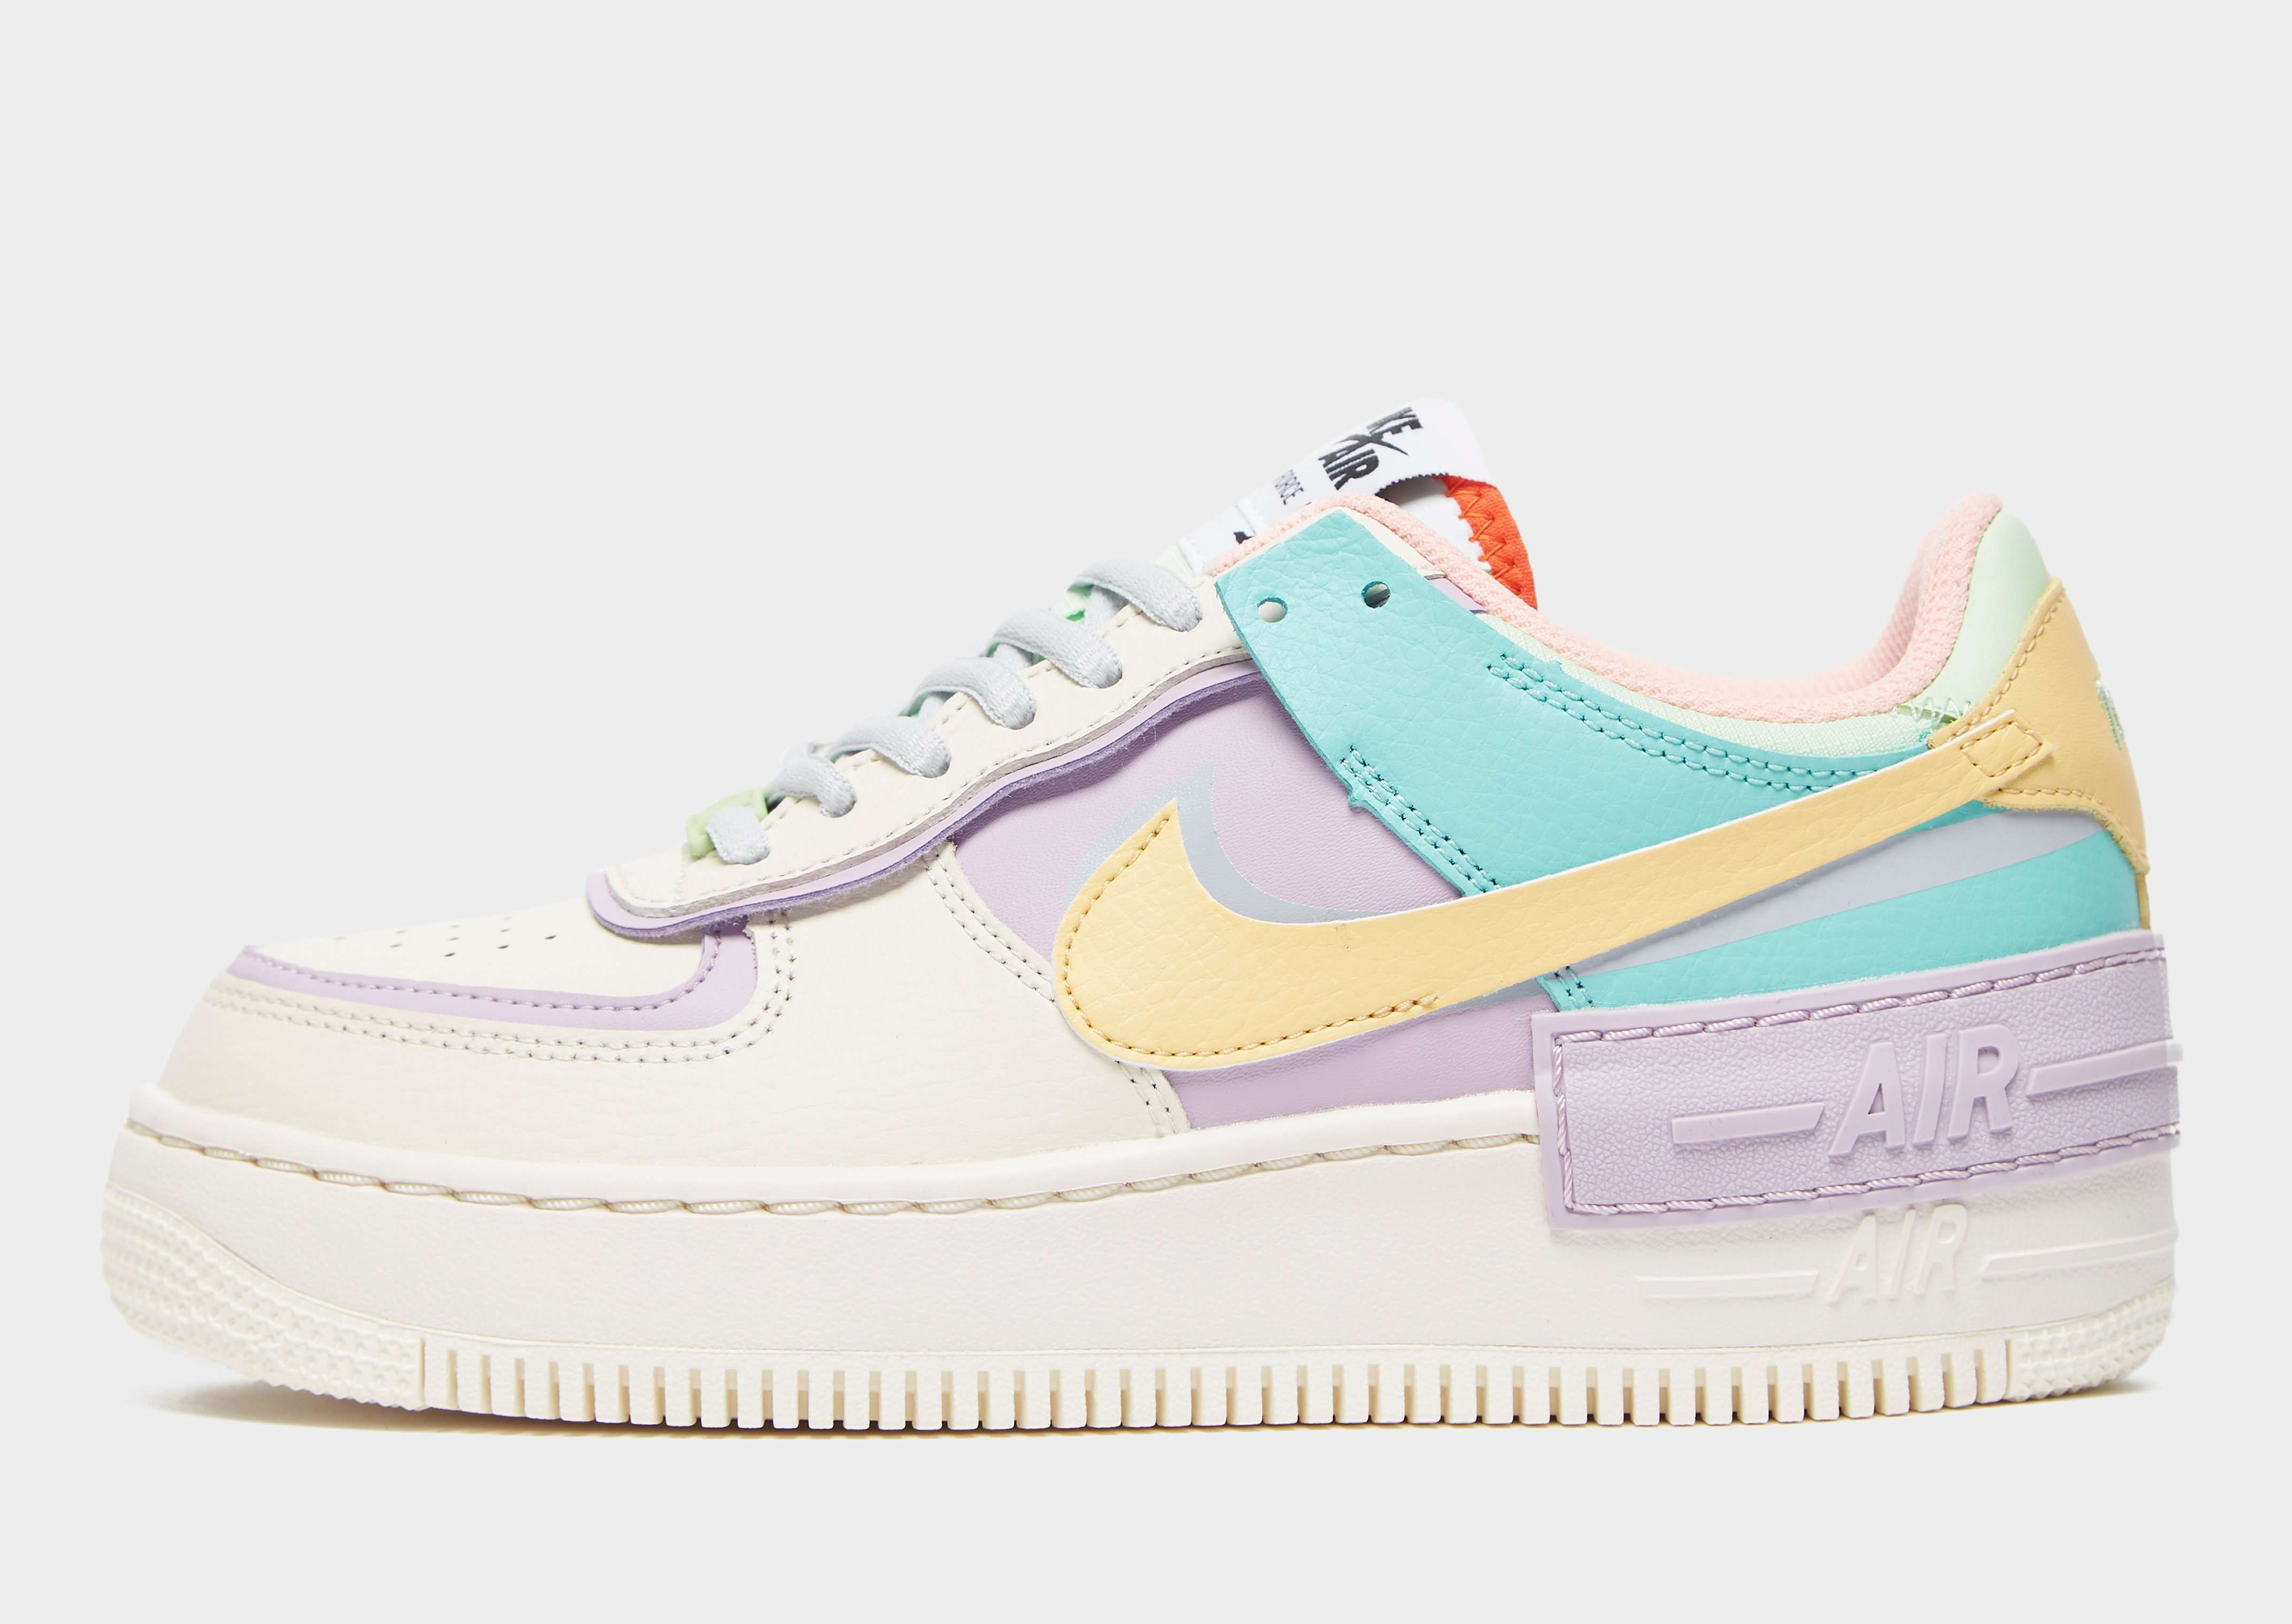 Nike Air Force 1 Shadow online for Nike Air